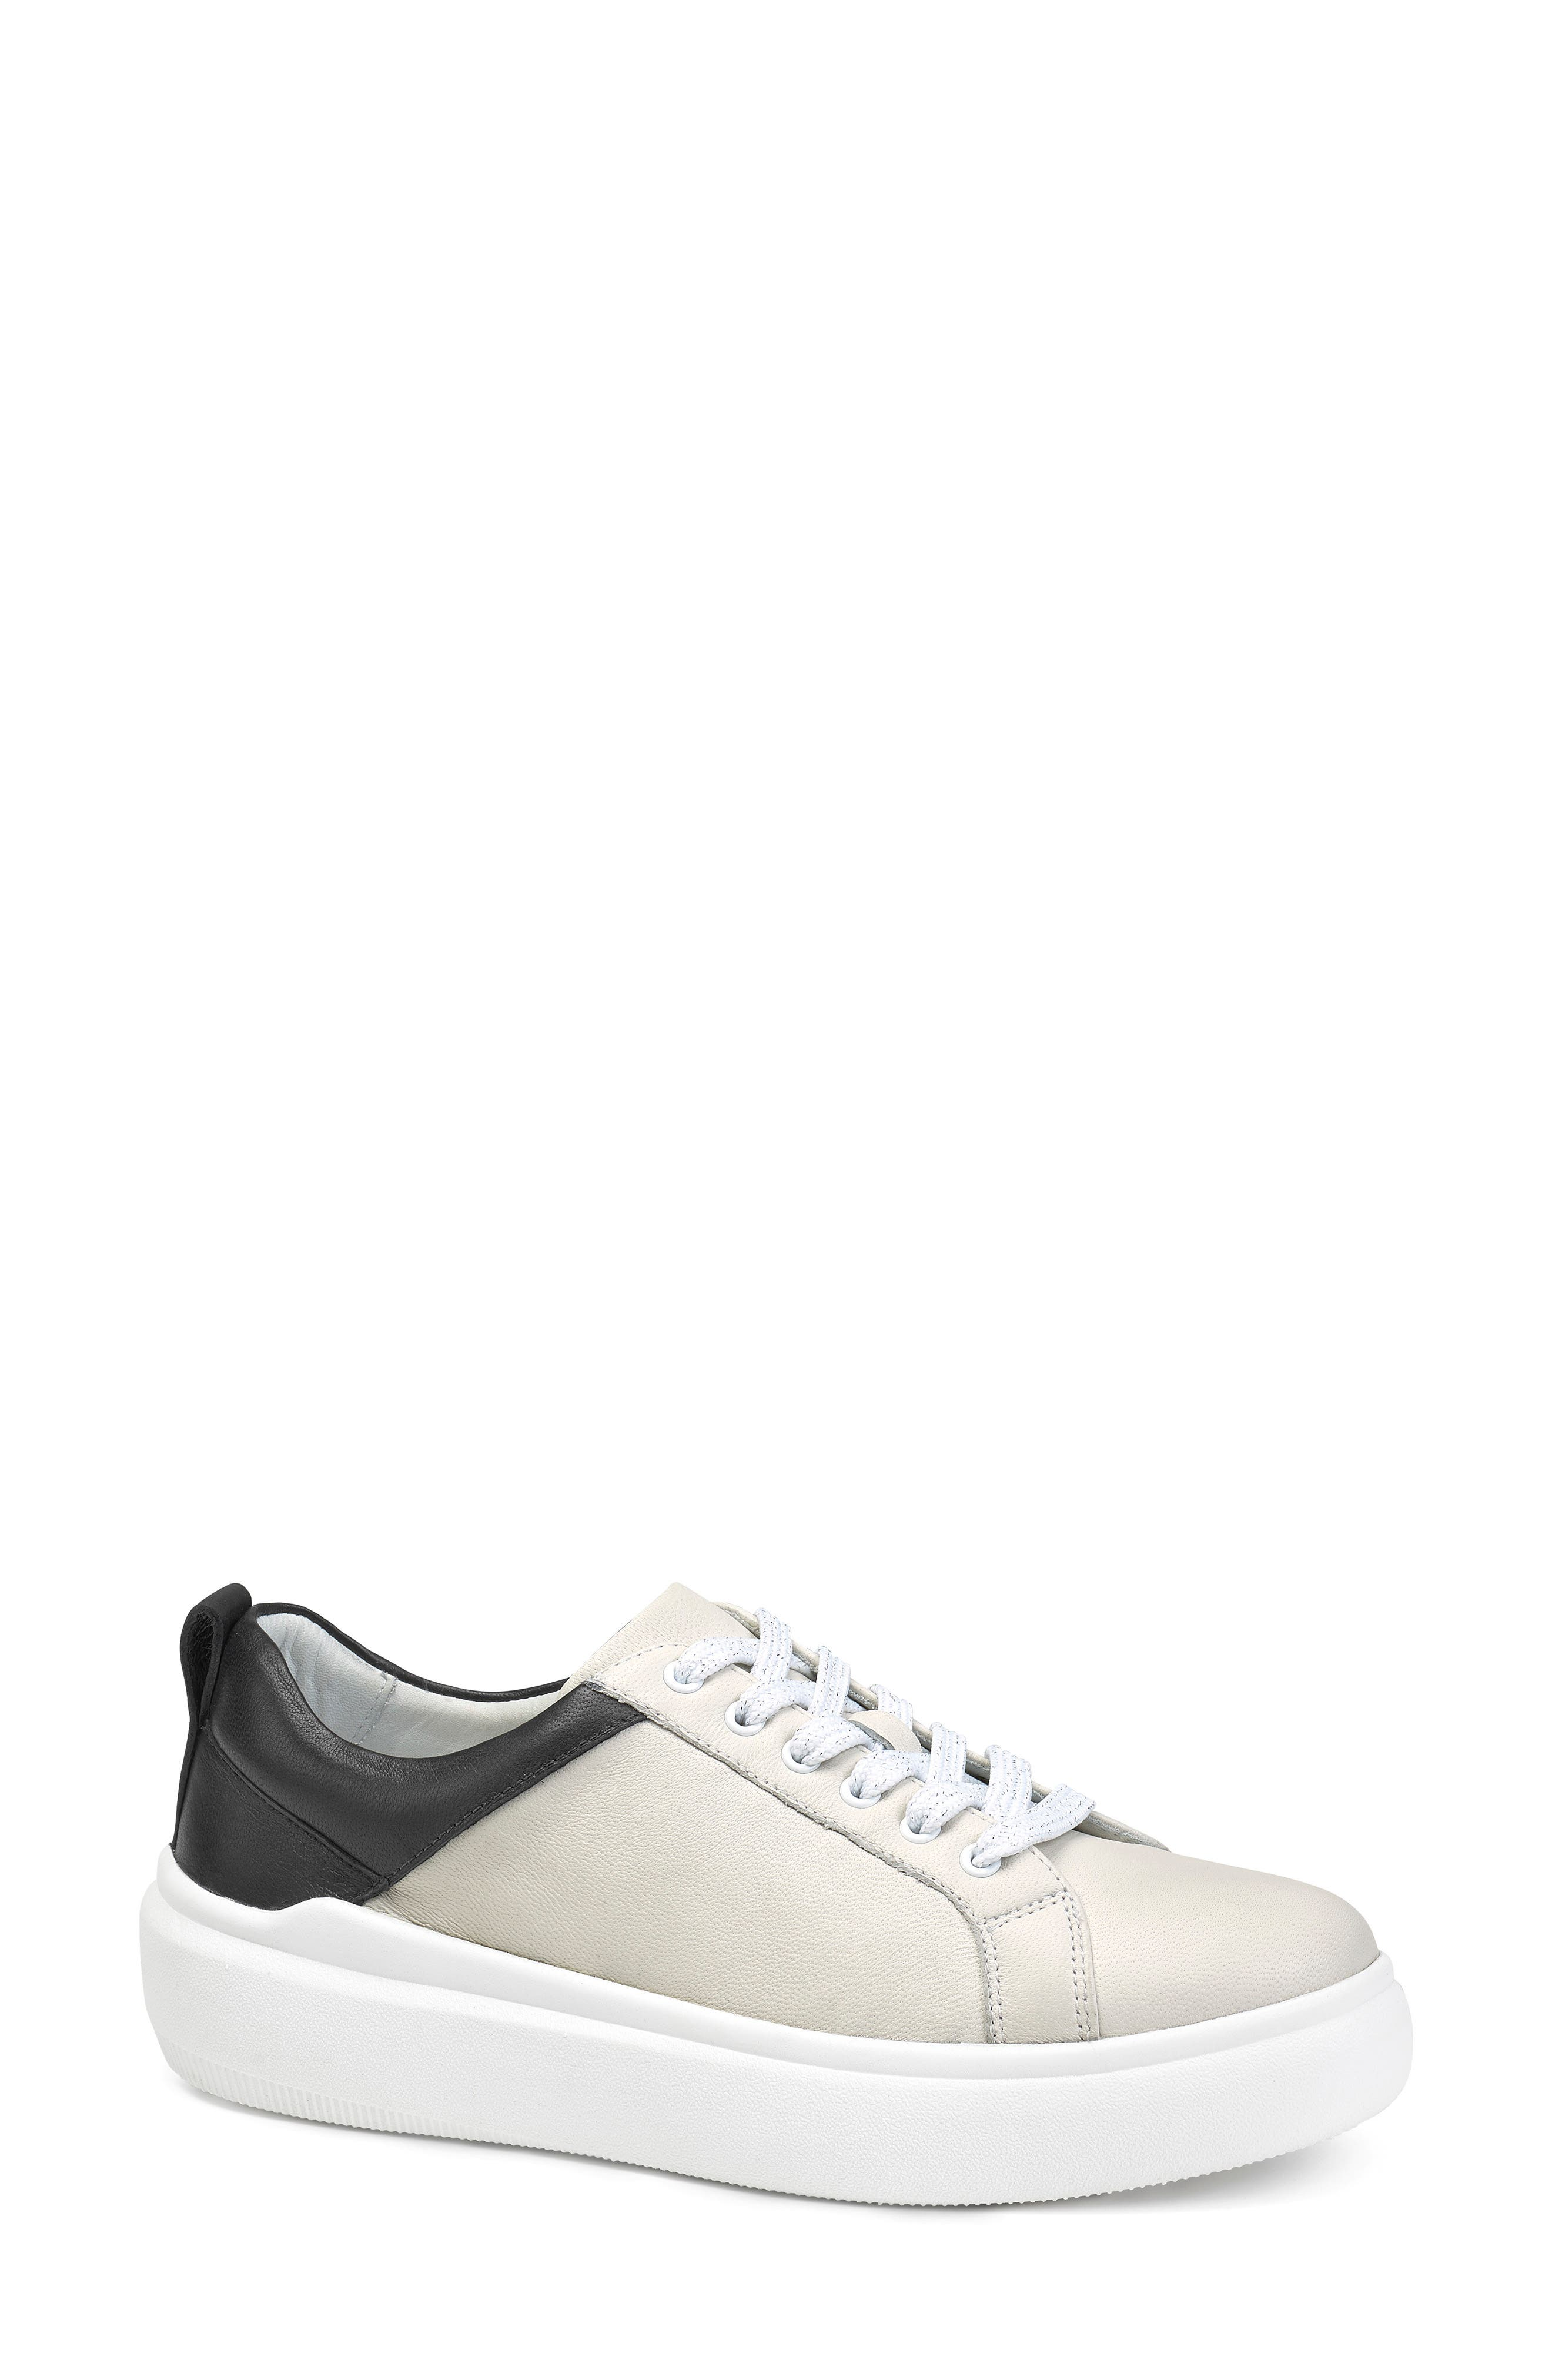 Image of Trask Layla Sneaker